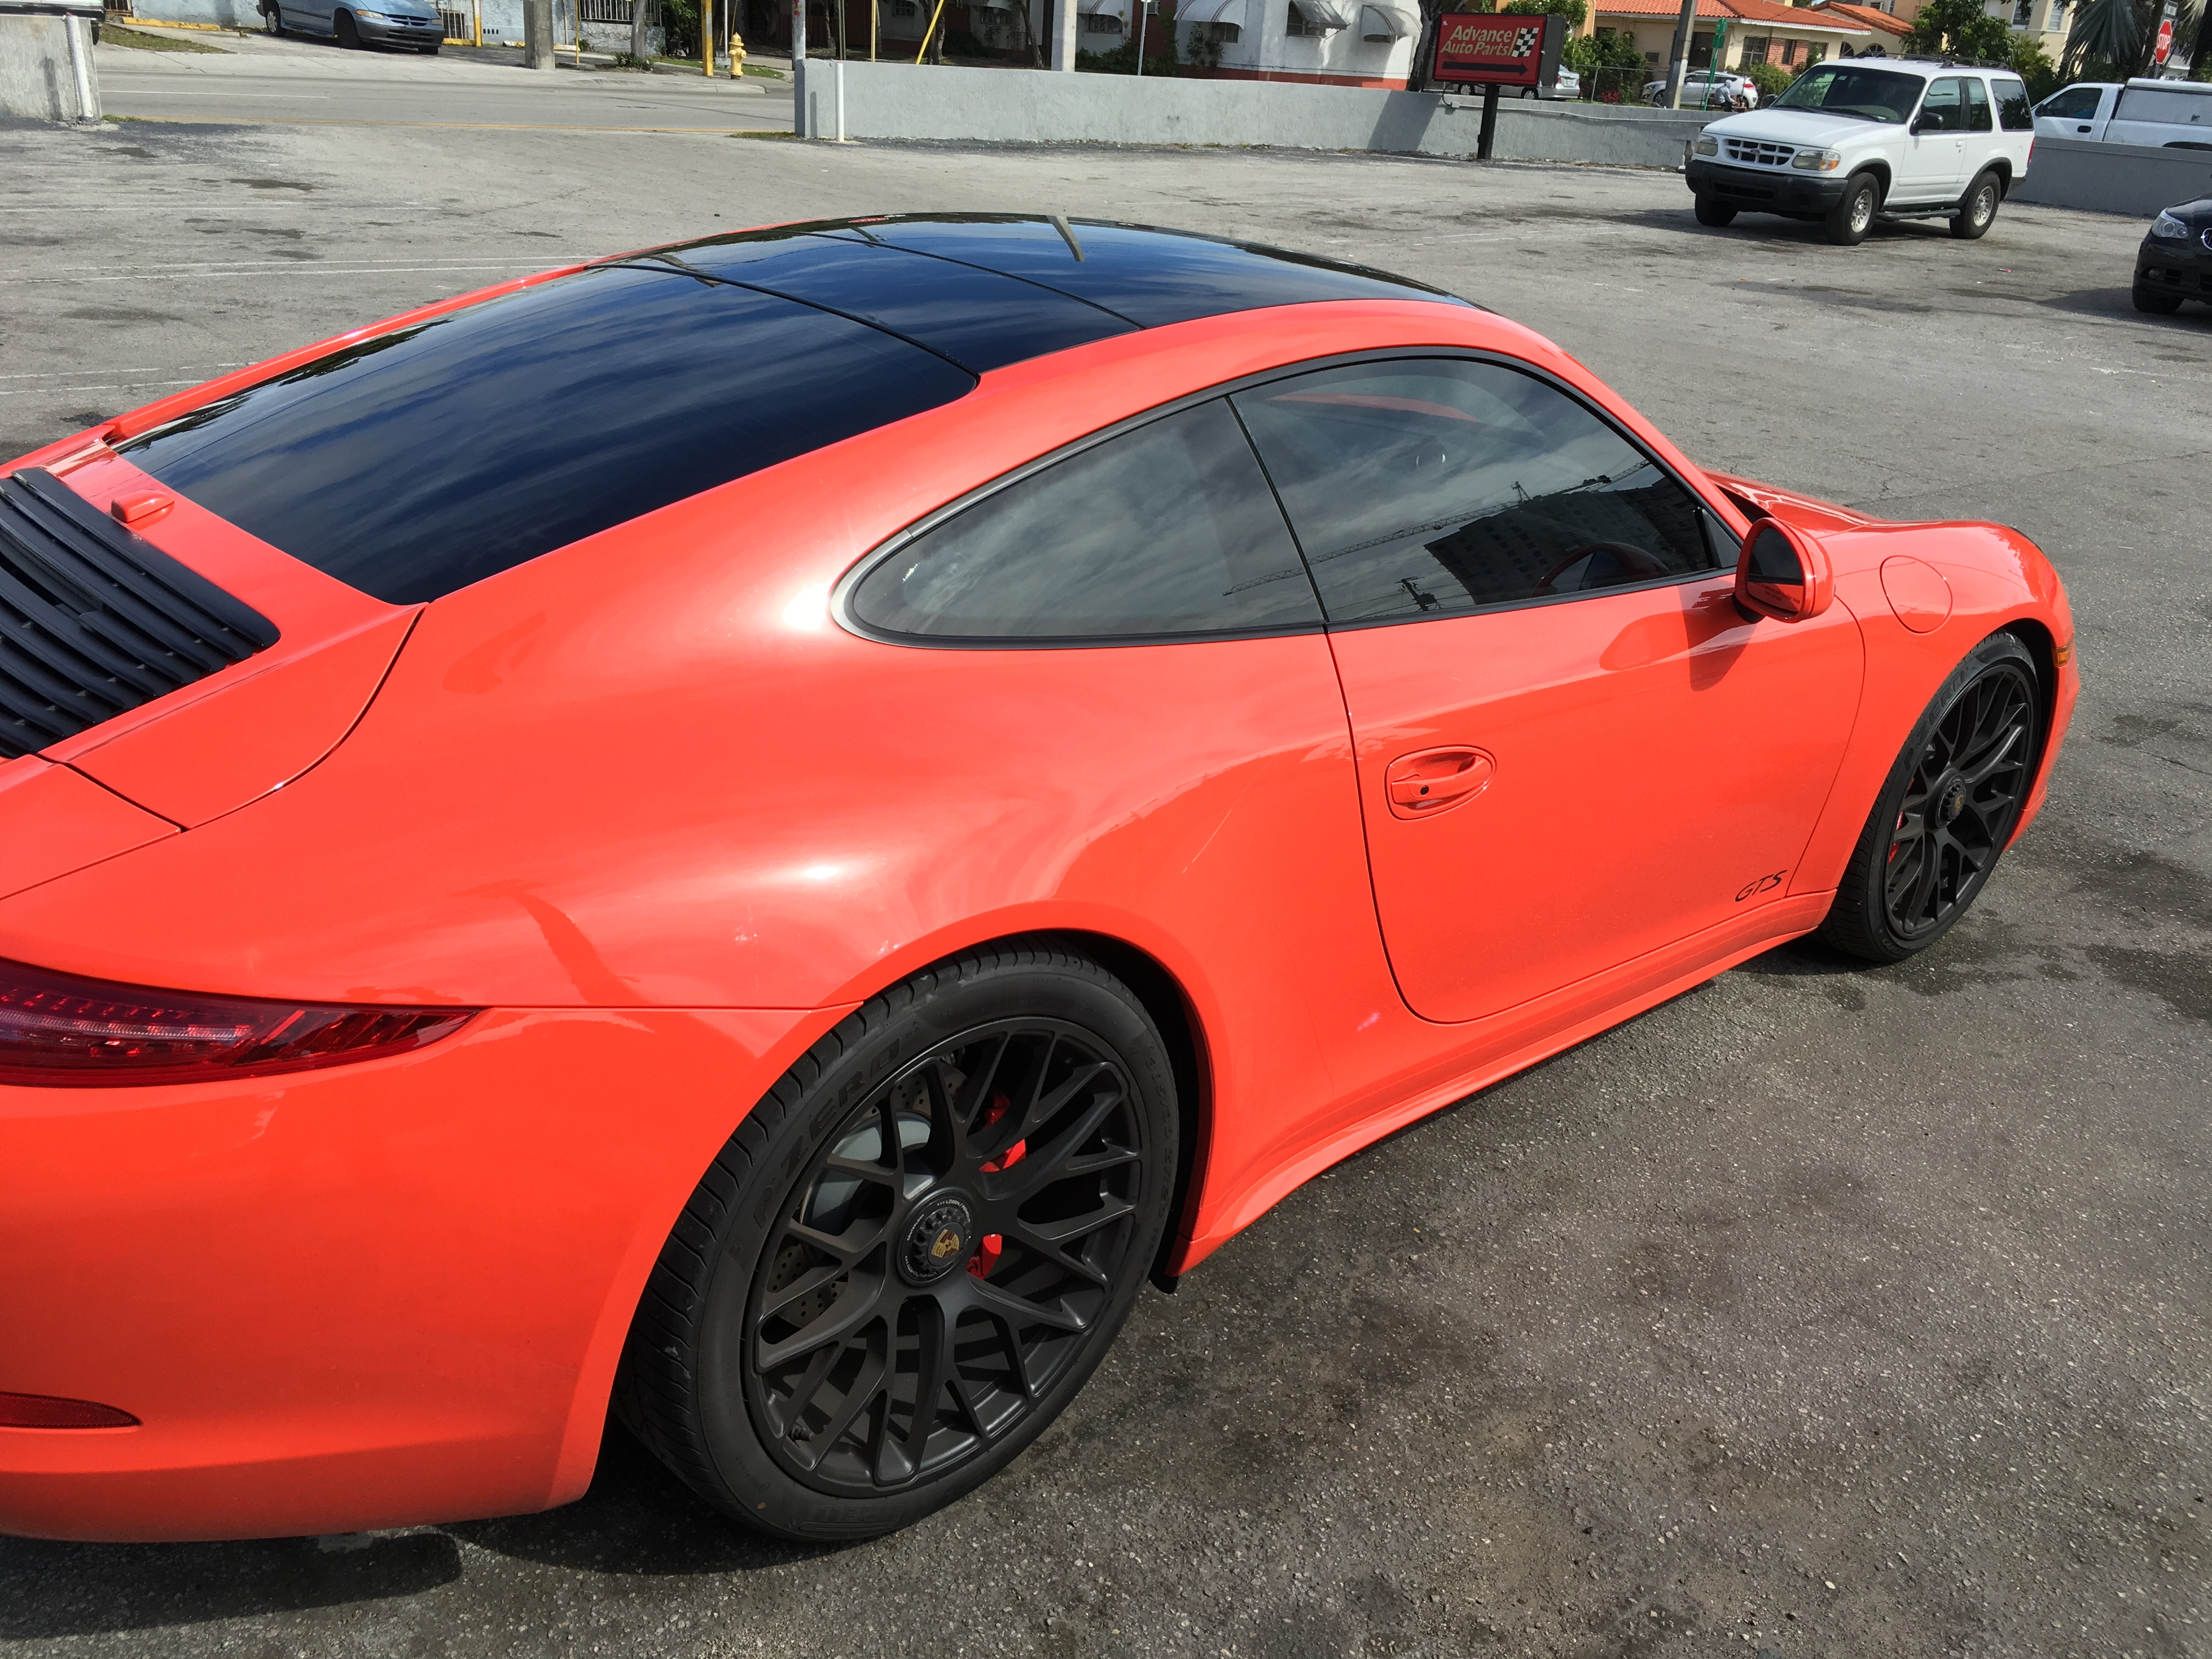 Best Window Tinting and Car Accessories in Miami (mobile tinting service)